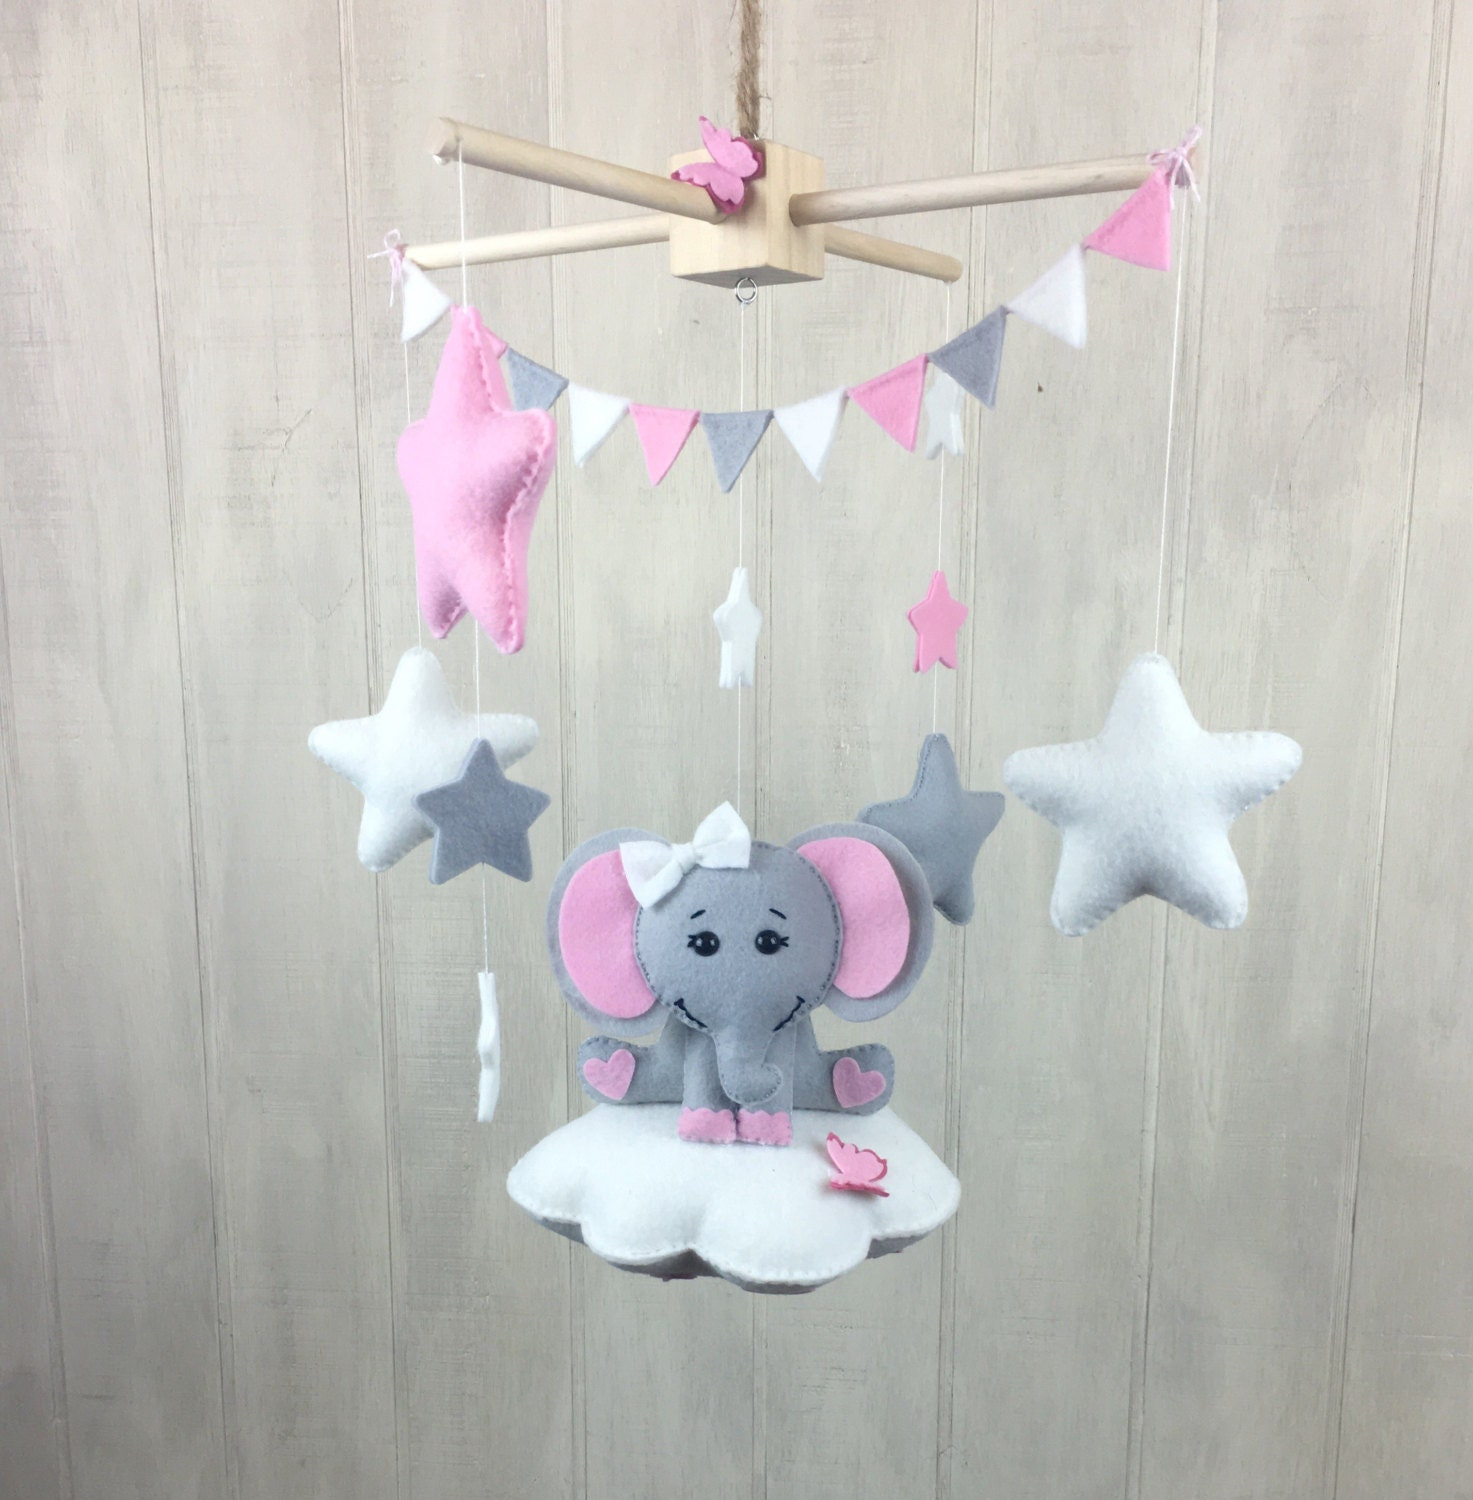 Elephant mobile baby mobiles cloud von juniperstreetdesigns